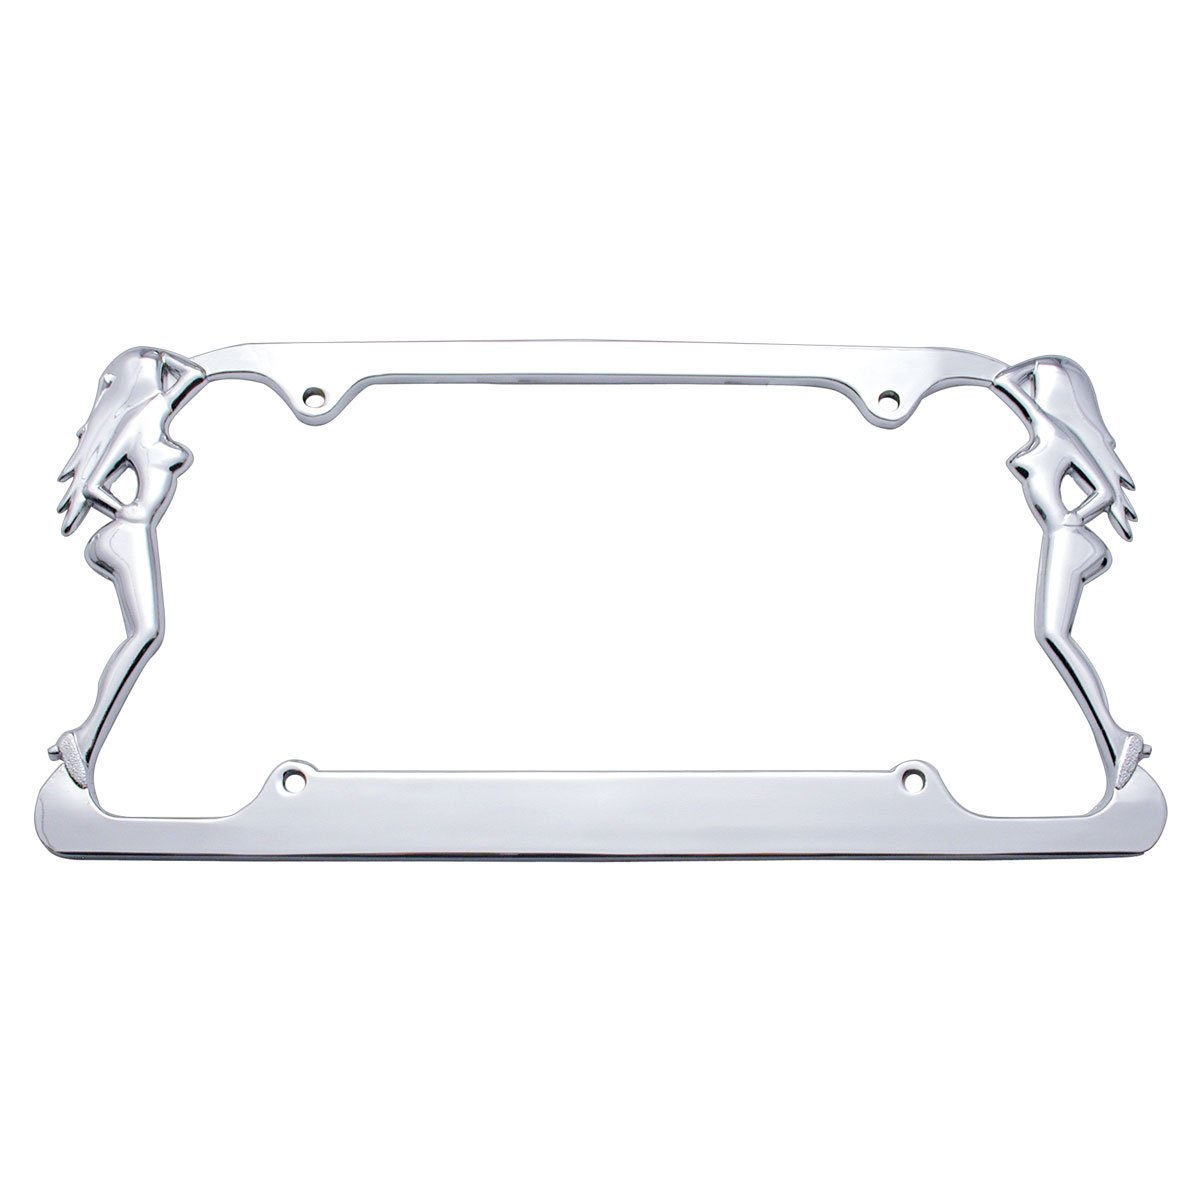 United Pacific 50007 Chrome Nude Lady License Plate Frame